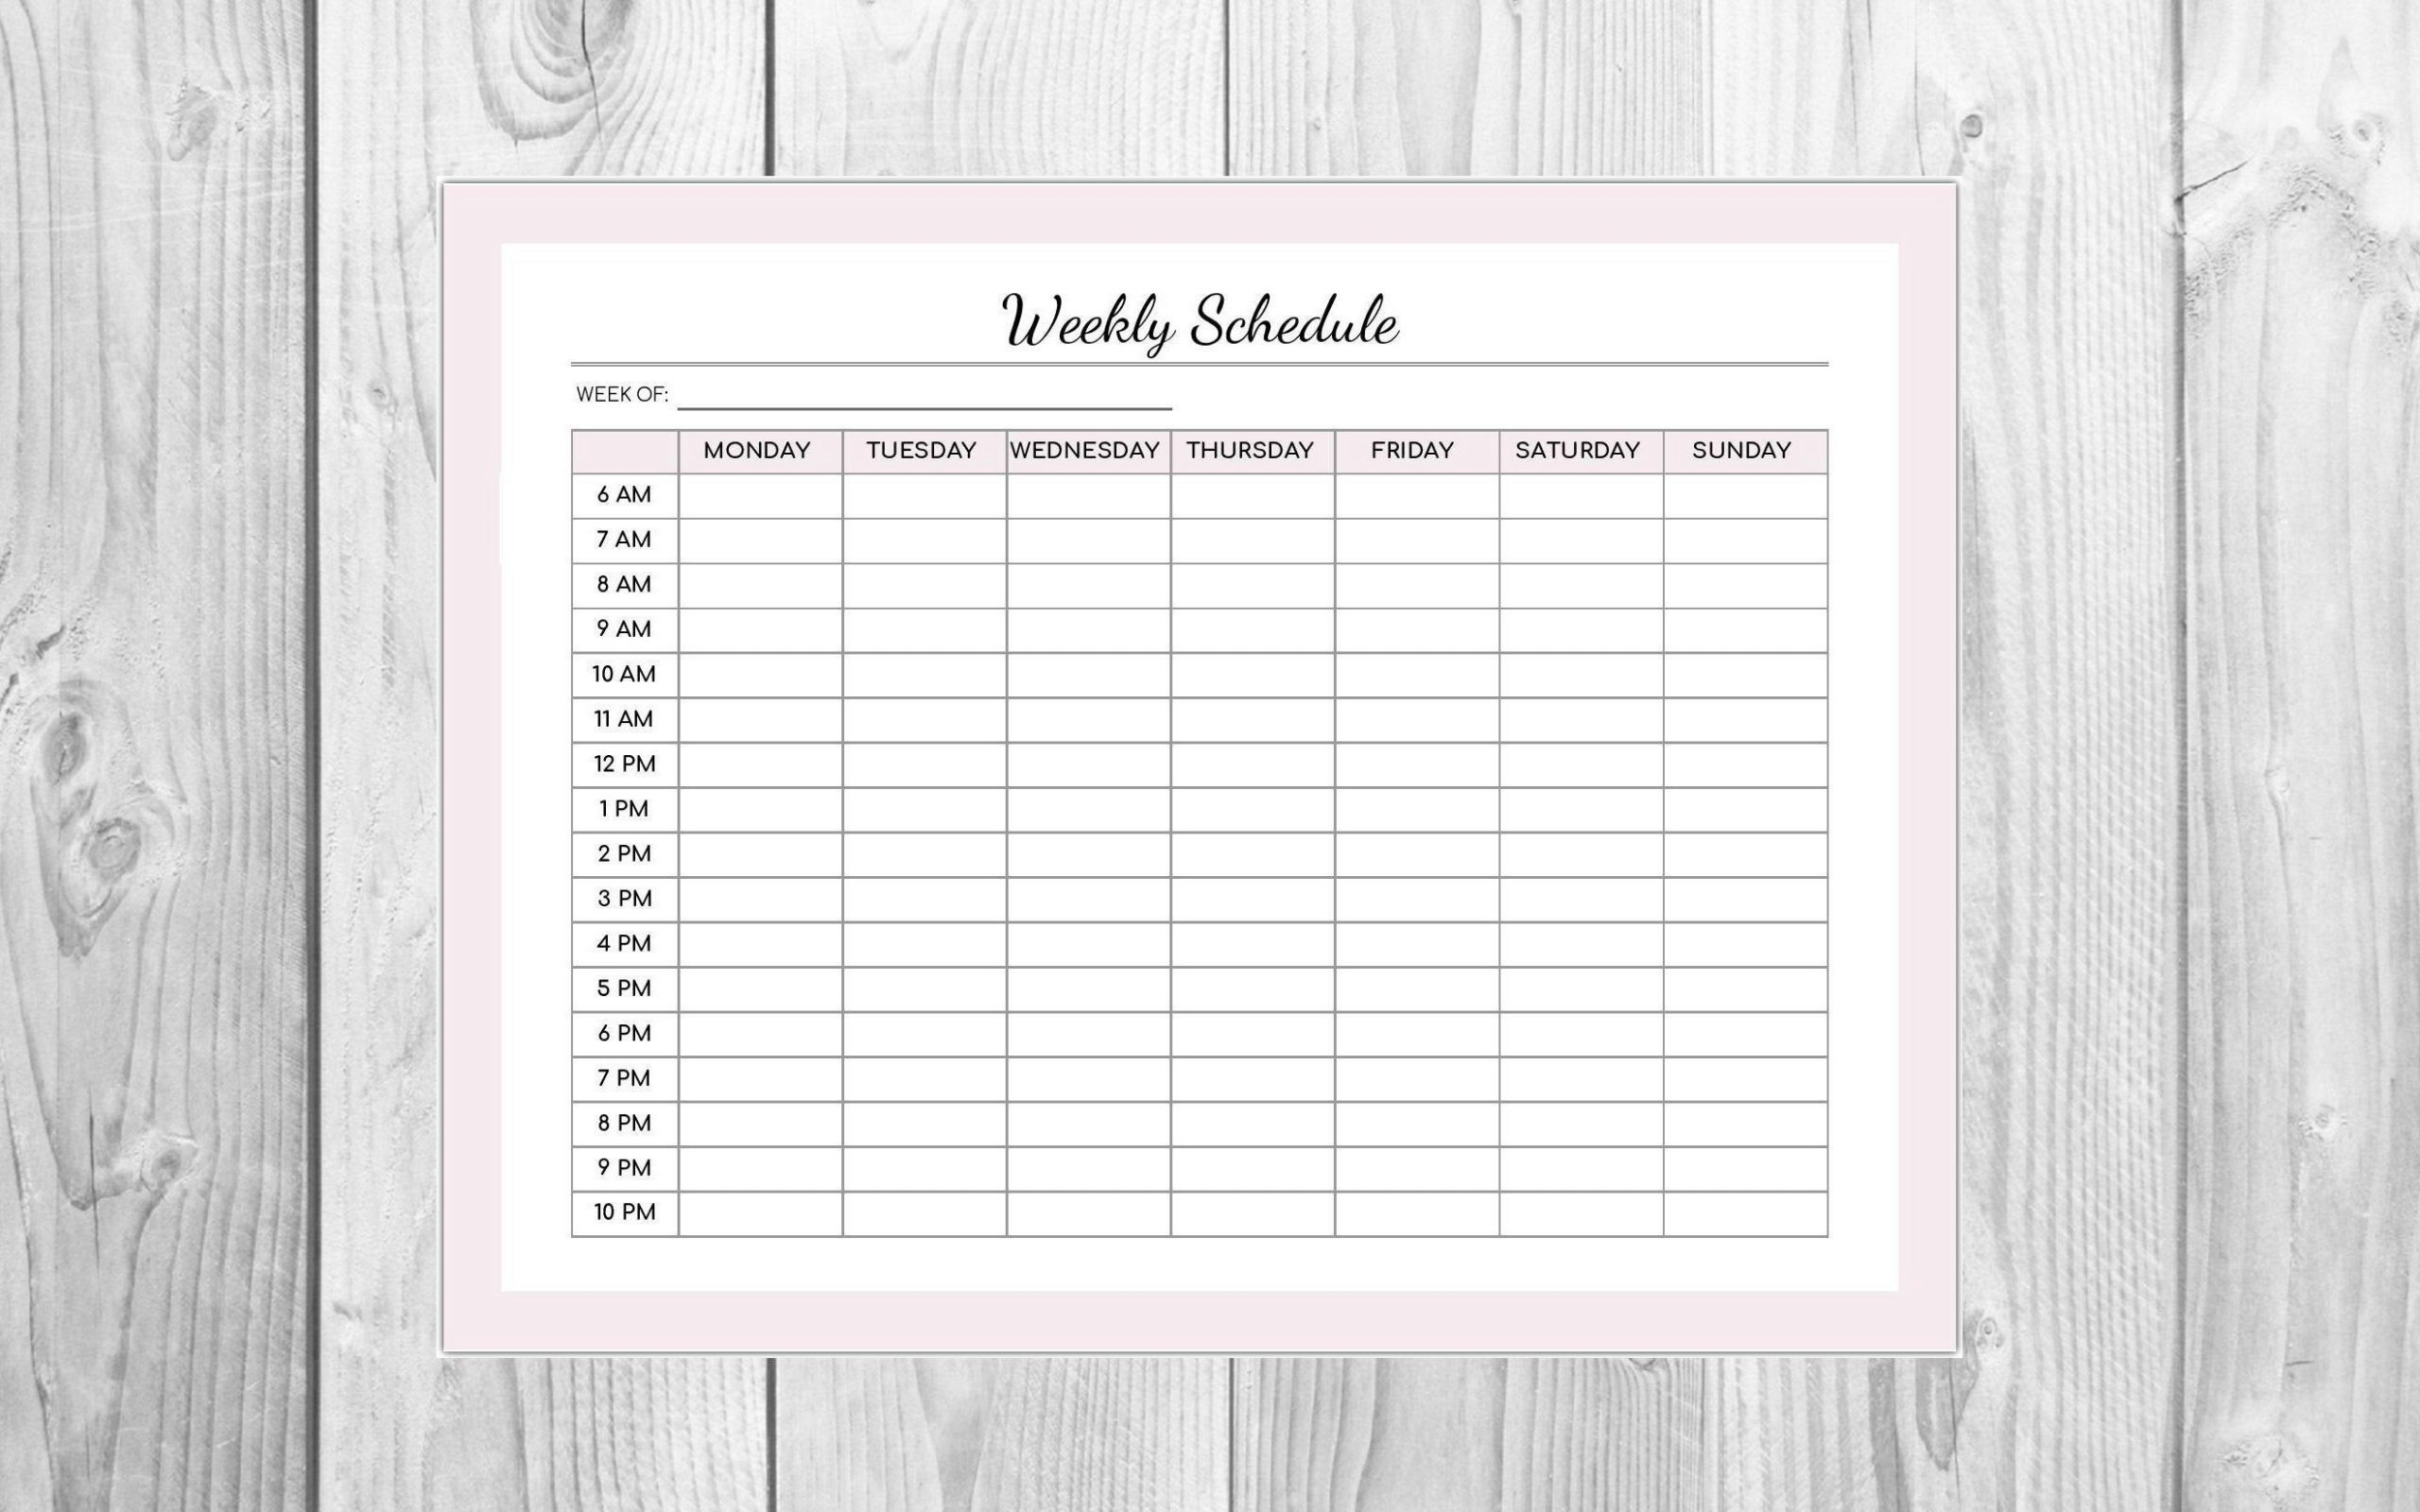 Weekly Schedule Pink Editable Pdf- Hourly Schedule Monday Friday Schedule Download